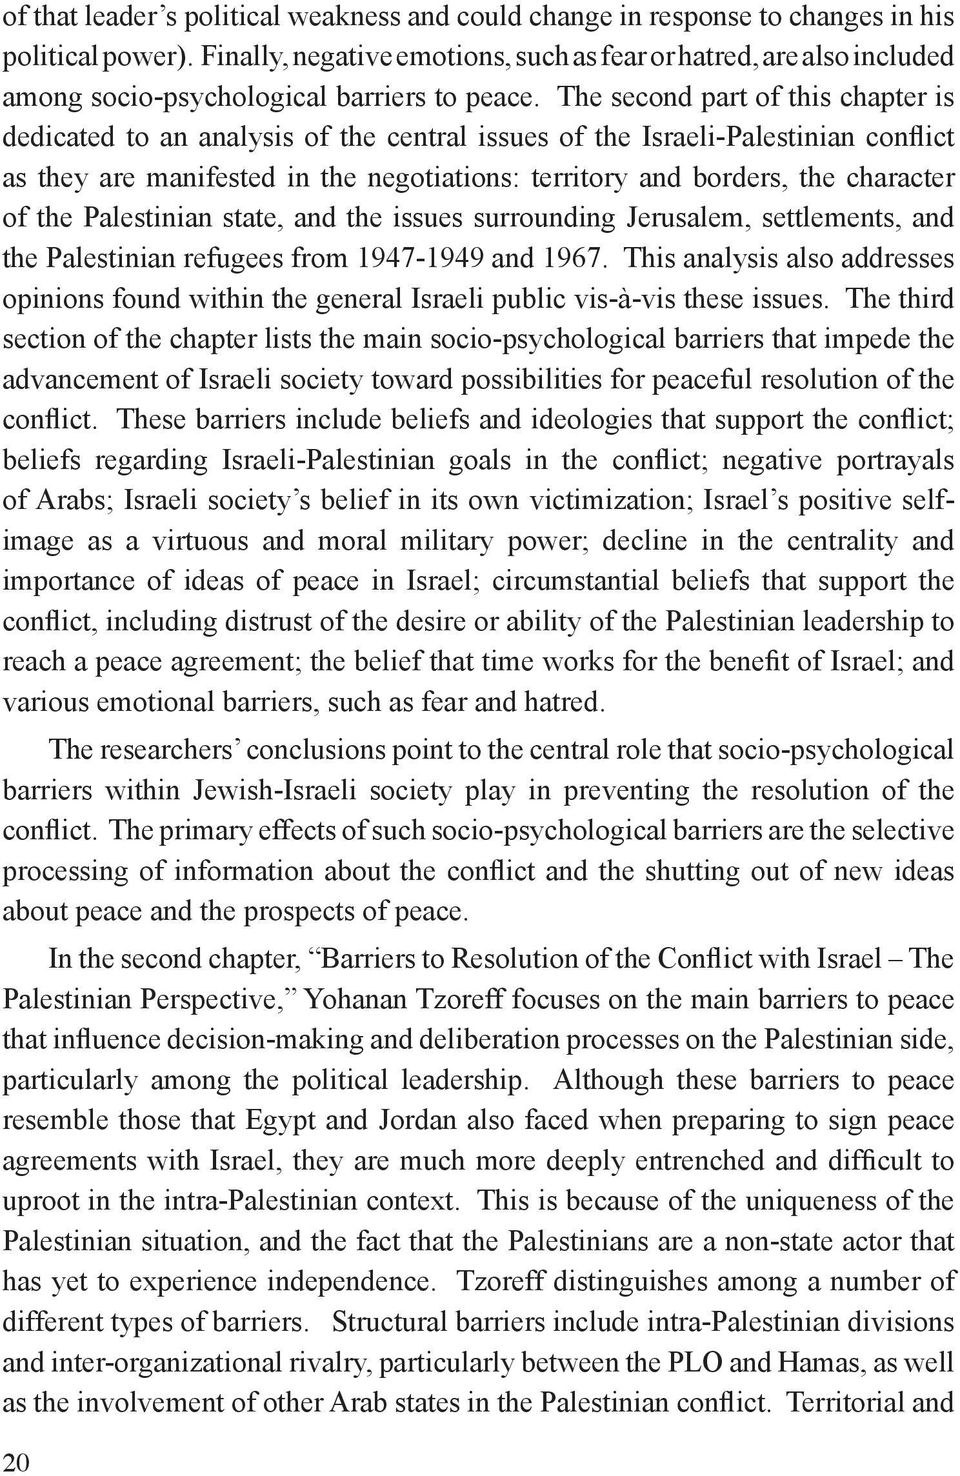 The second part of this chapter is dedicated to an analysis of the central issues of the Israeli-Palestinian conflict as they are manifested in the negotiations: territory and borders, the character